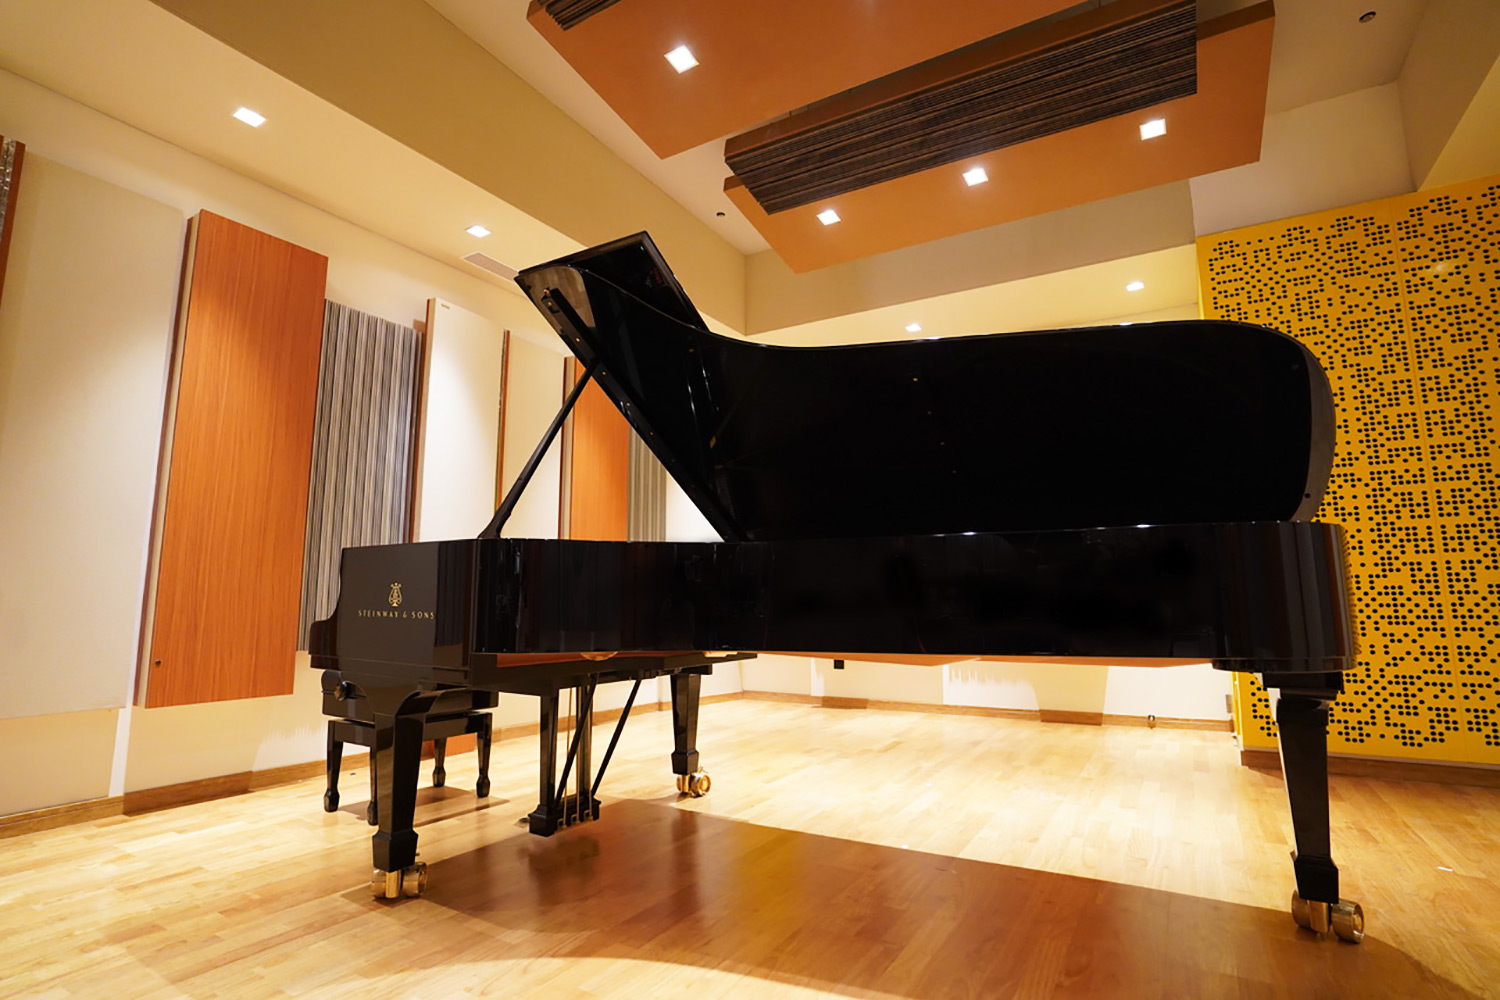 The prestigious Xinghai Conservatory of Music engaged WSDG to develop their new world-class ACE Studios, based on their recent success in Chinese studios. Steinway & Sons piano.